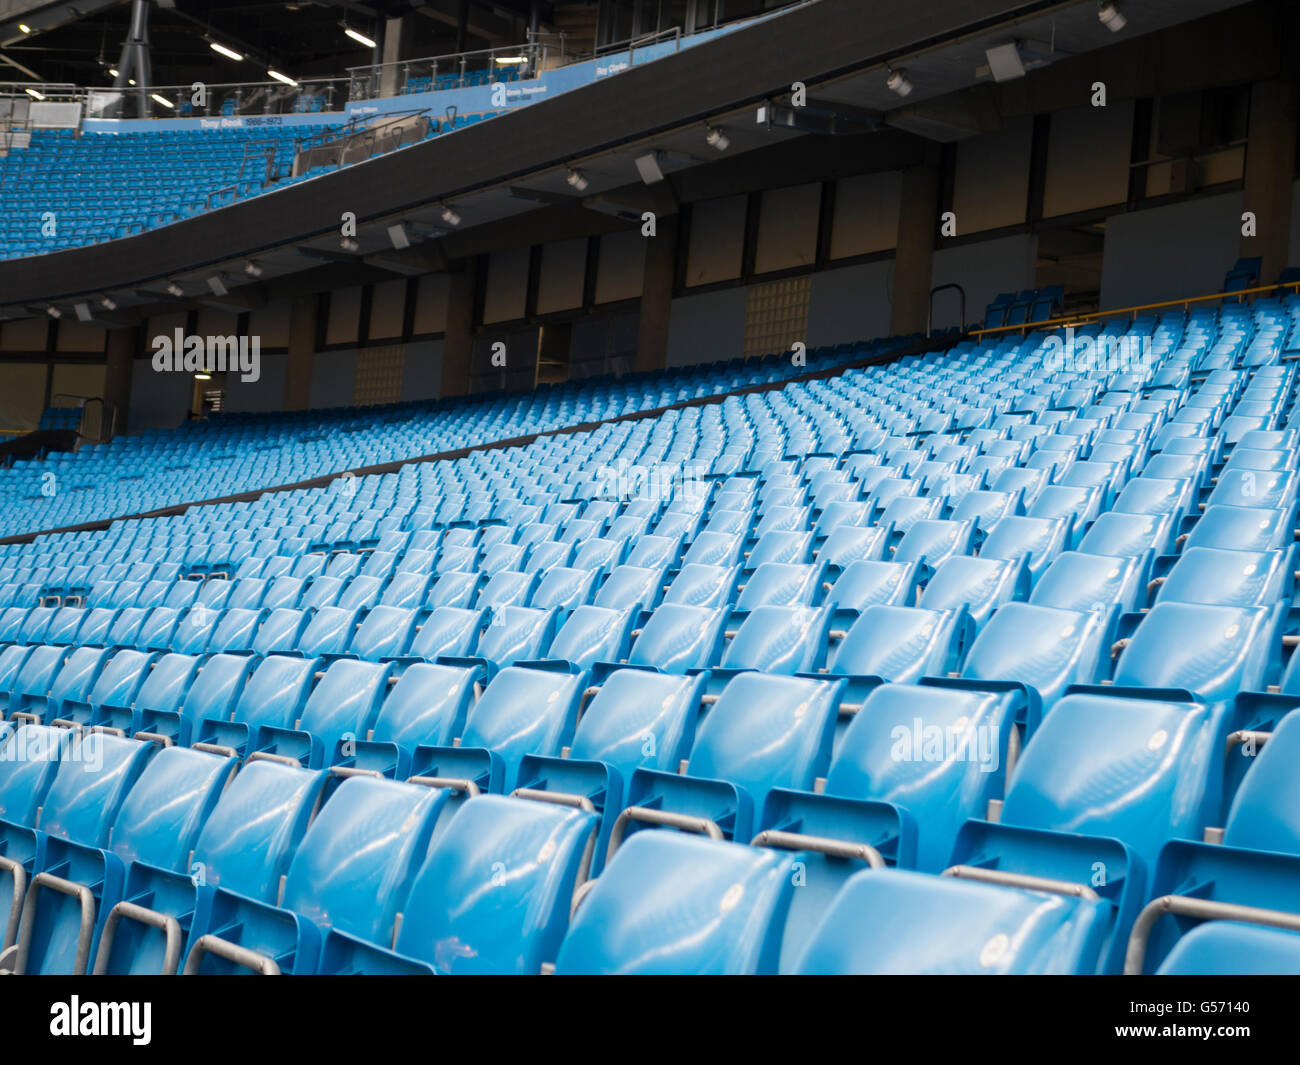 Seats inside Etihad Stadium Manchester CIty Football Club UK - Stock Image